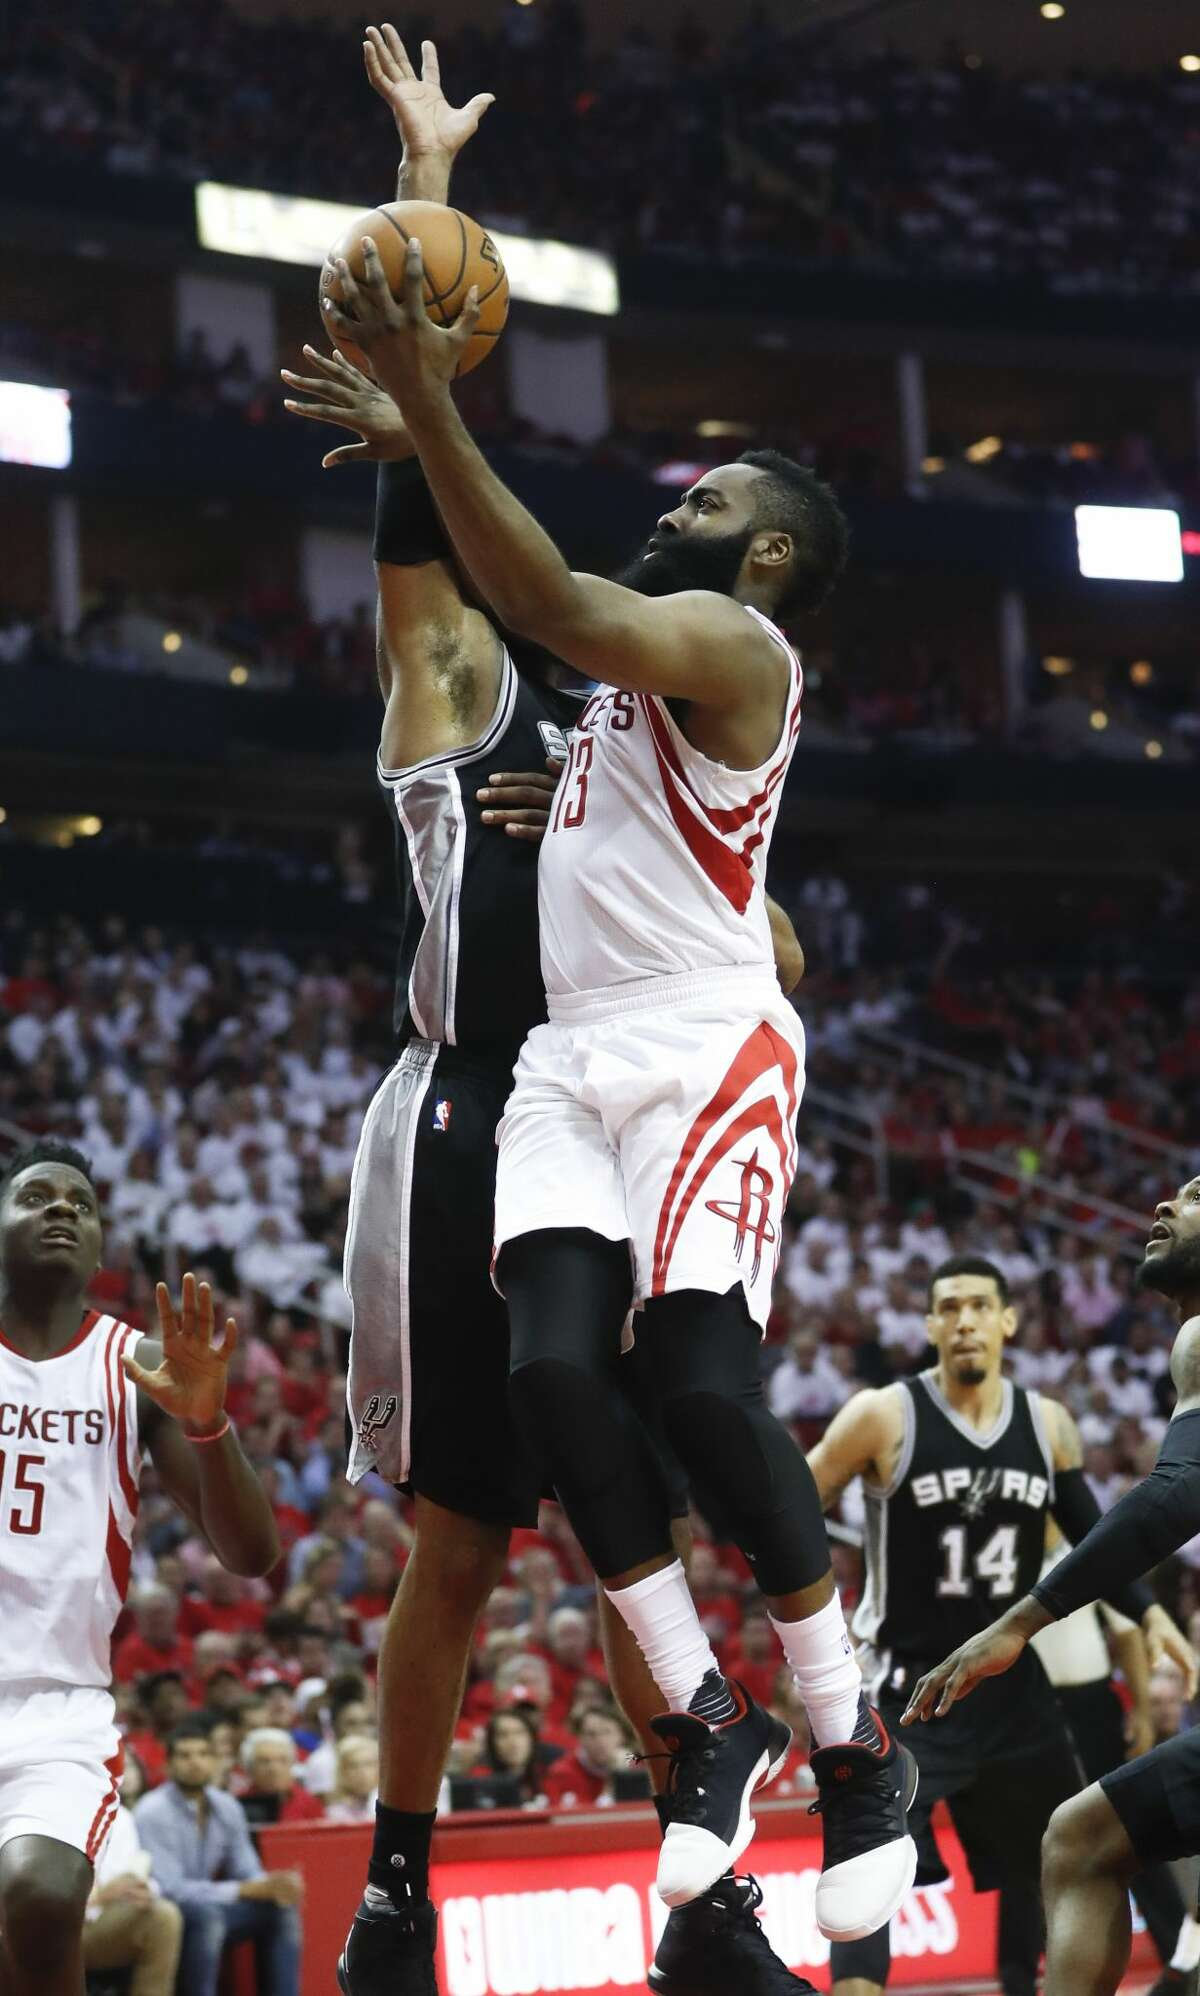 Houston Rockets guard James Harden (13) goes for the basket during the second half of the NBA Western Conference semifinals playoff Game 3 at Toyota Center Friday, May 5, 2017, in Houston. ( Karen Warren / Houston Chronicle )